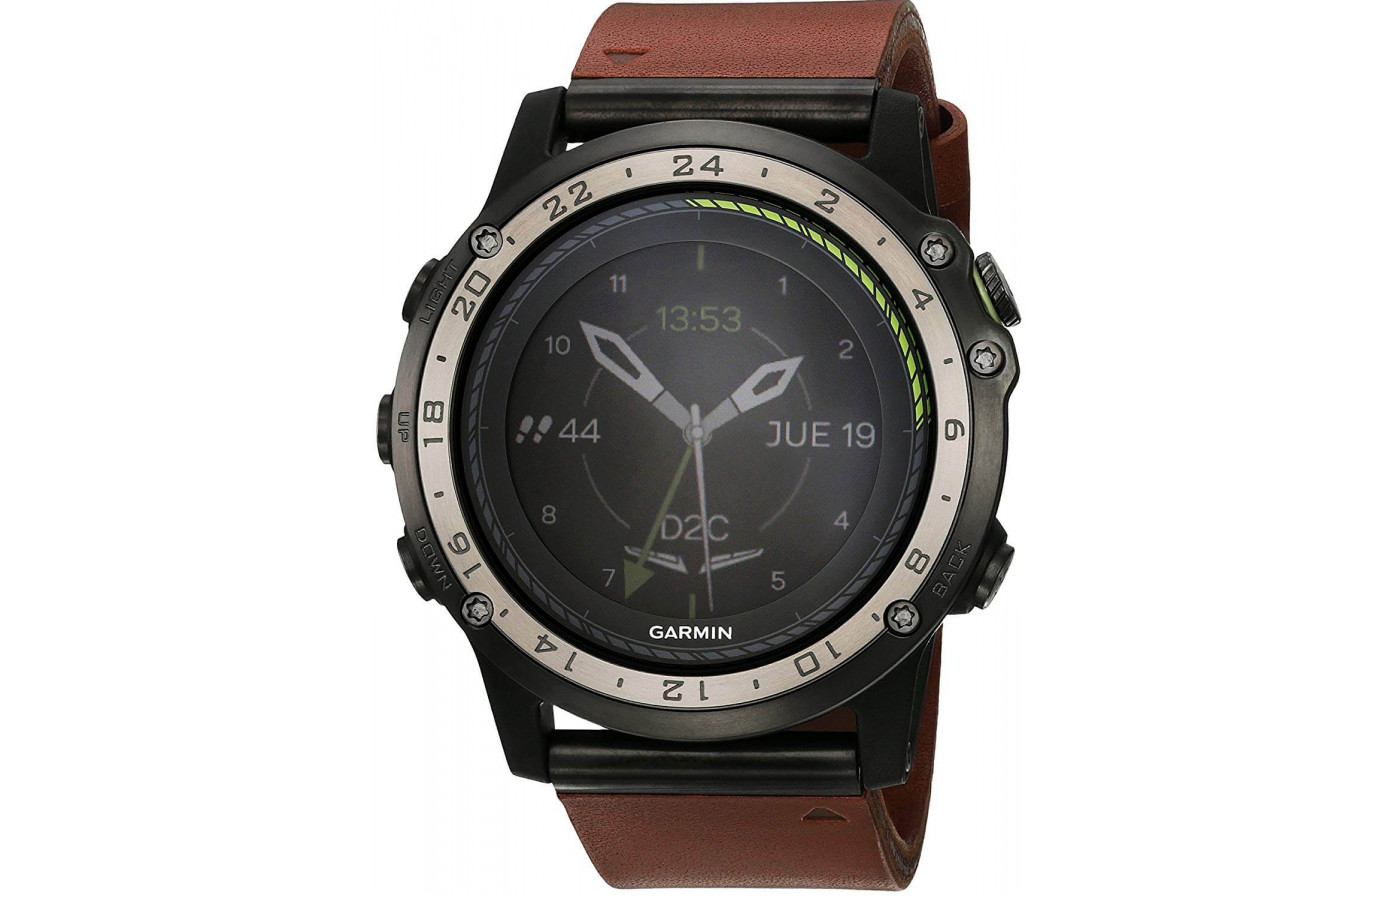 23880d571 Garmin D2 Charlie Reviewed - To Buy or Not in July 2019?